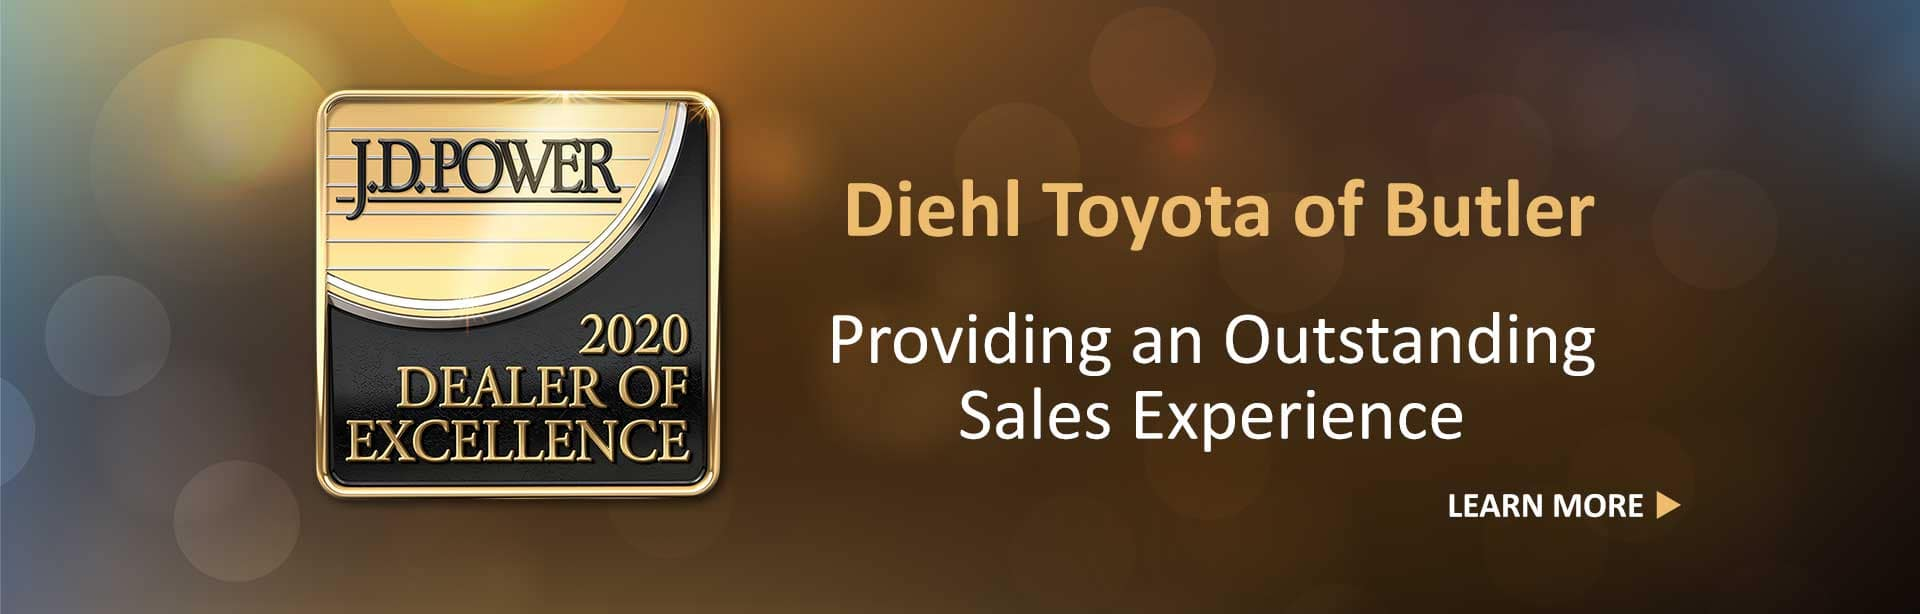 Diehl Toyota Butler PA Diehl Automotive Group JD Power Outstanding Sales Experience Dealership of Excellence